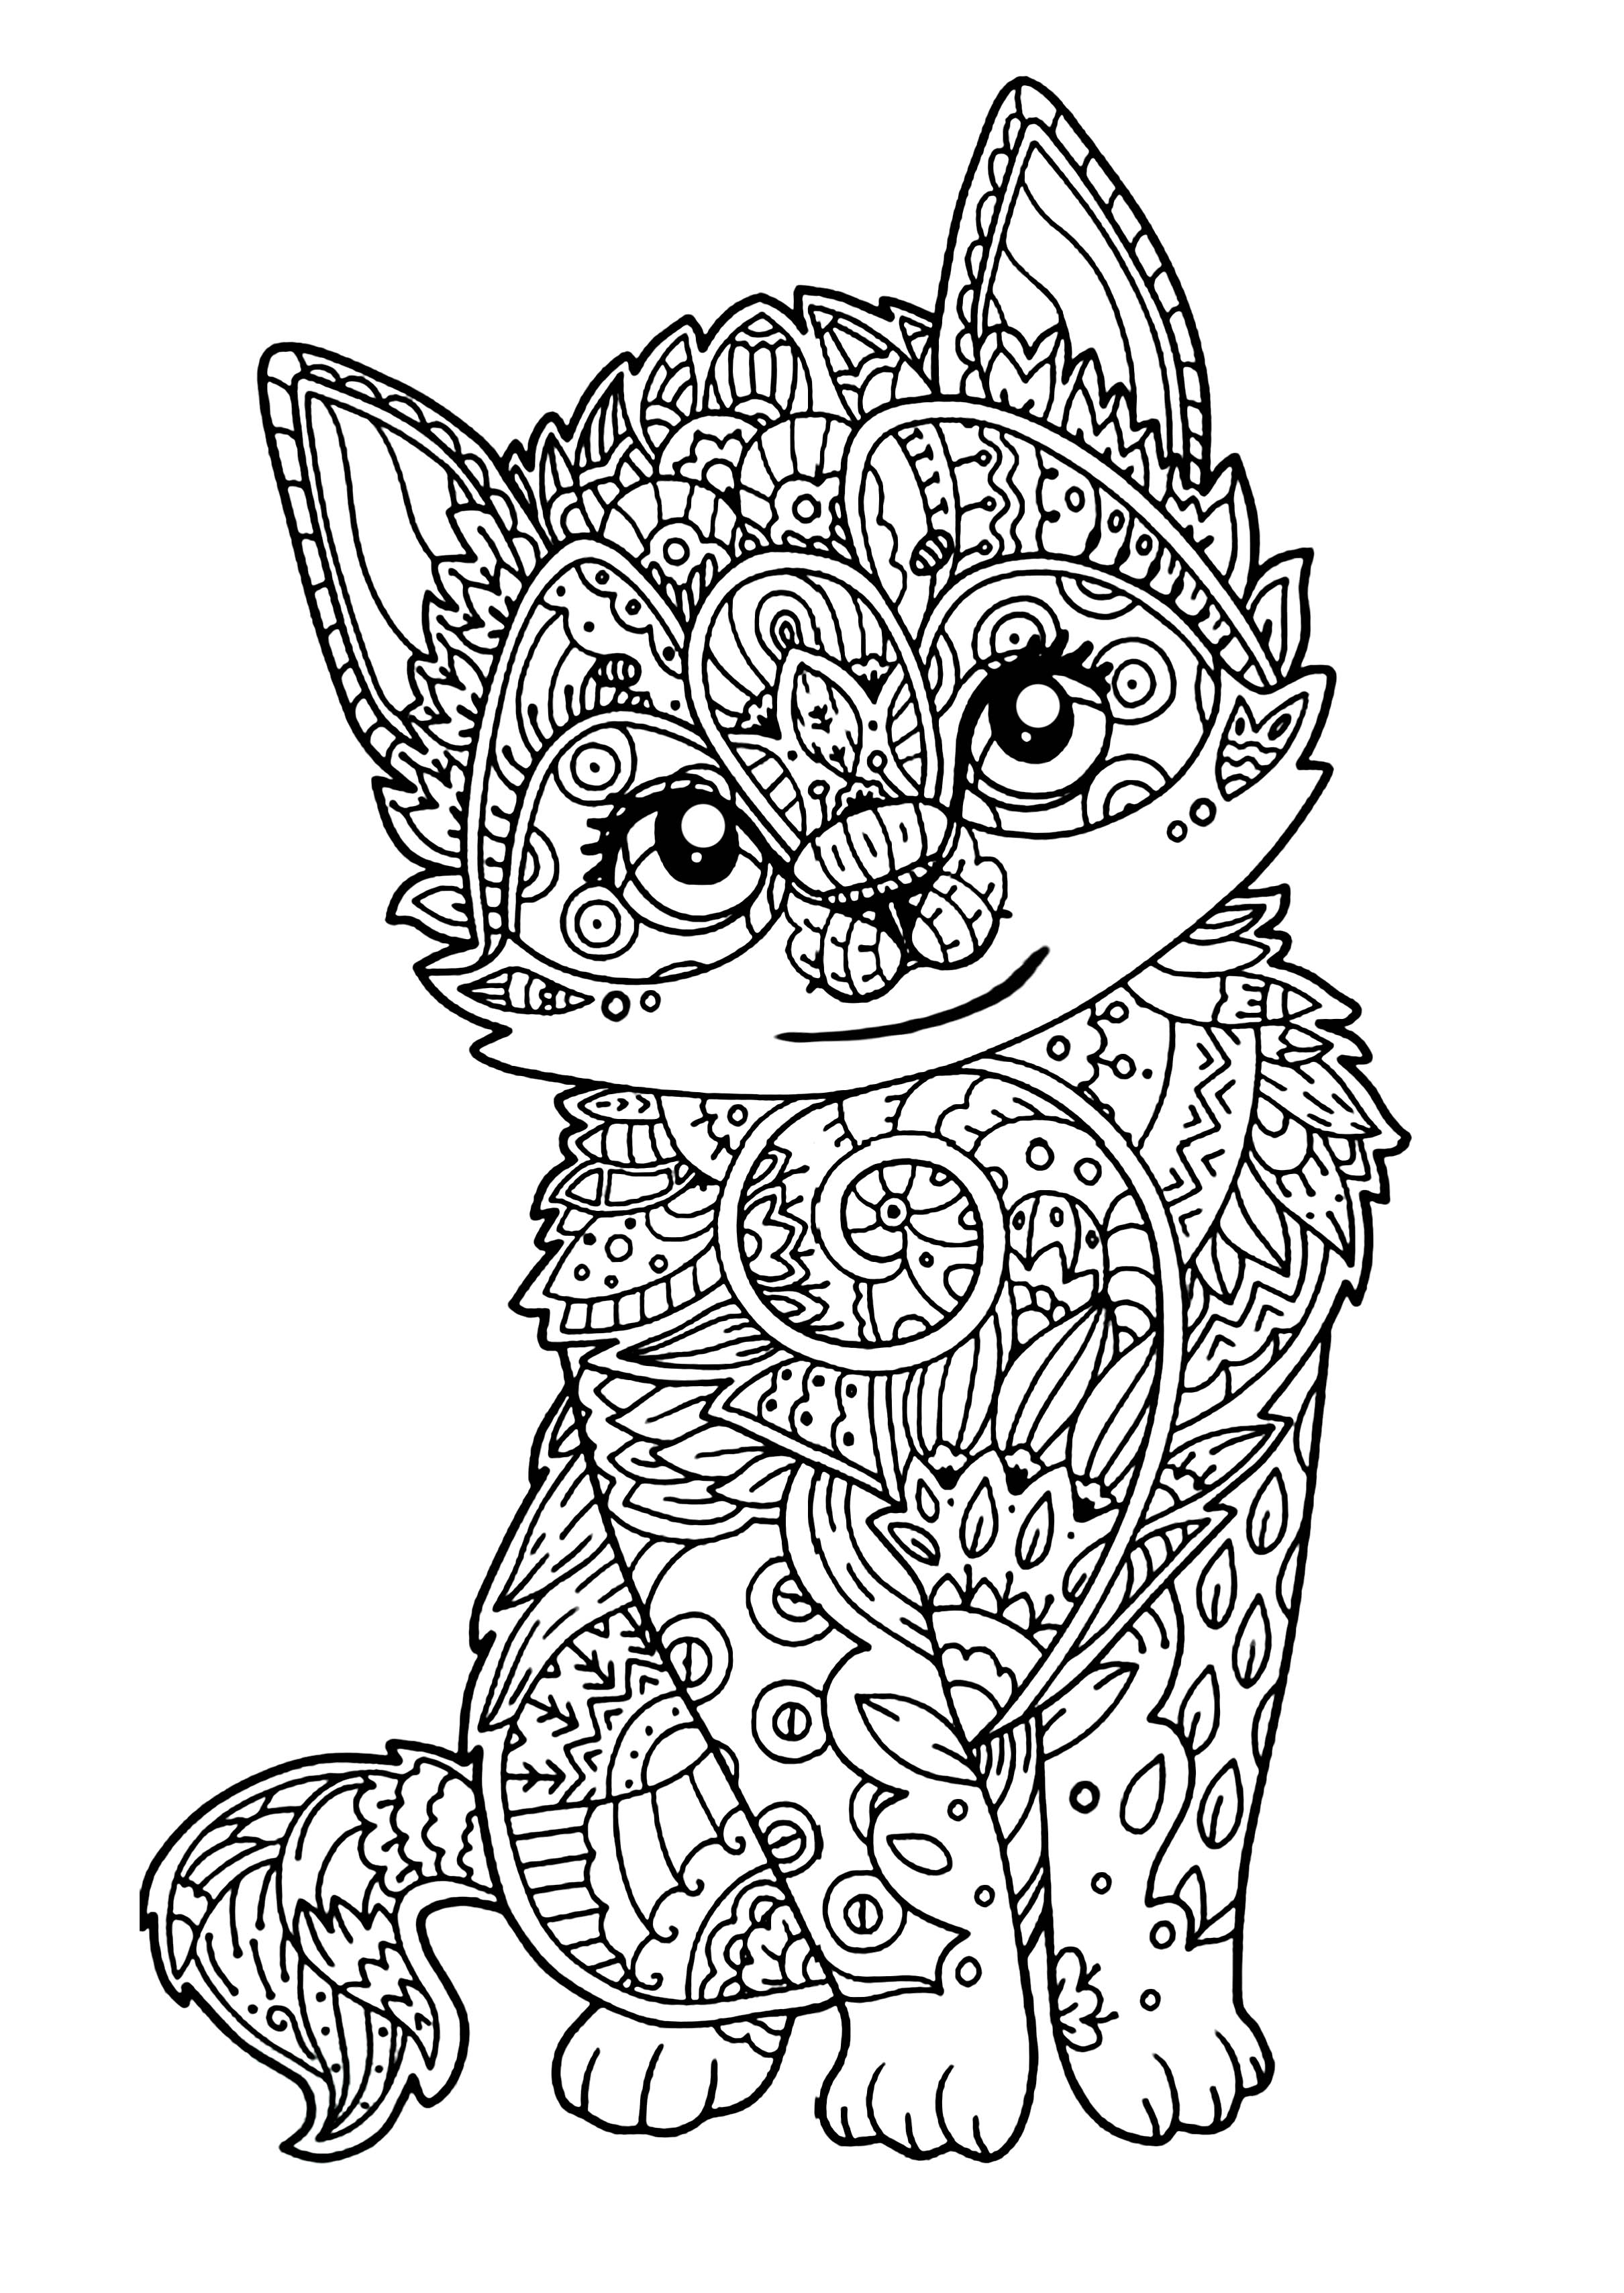 Cute kitten Cats Adult Coloring